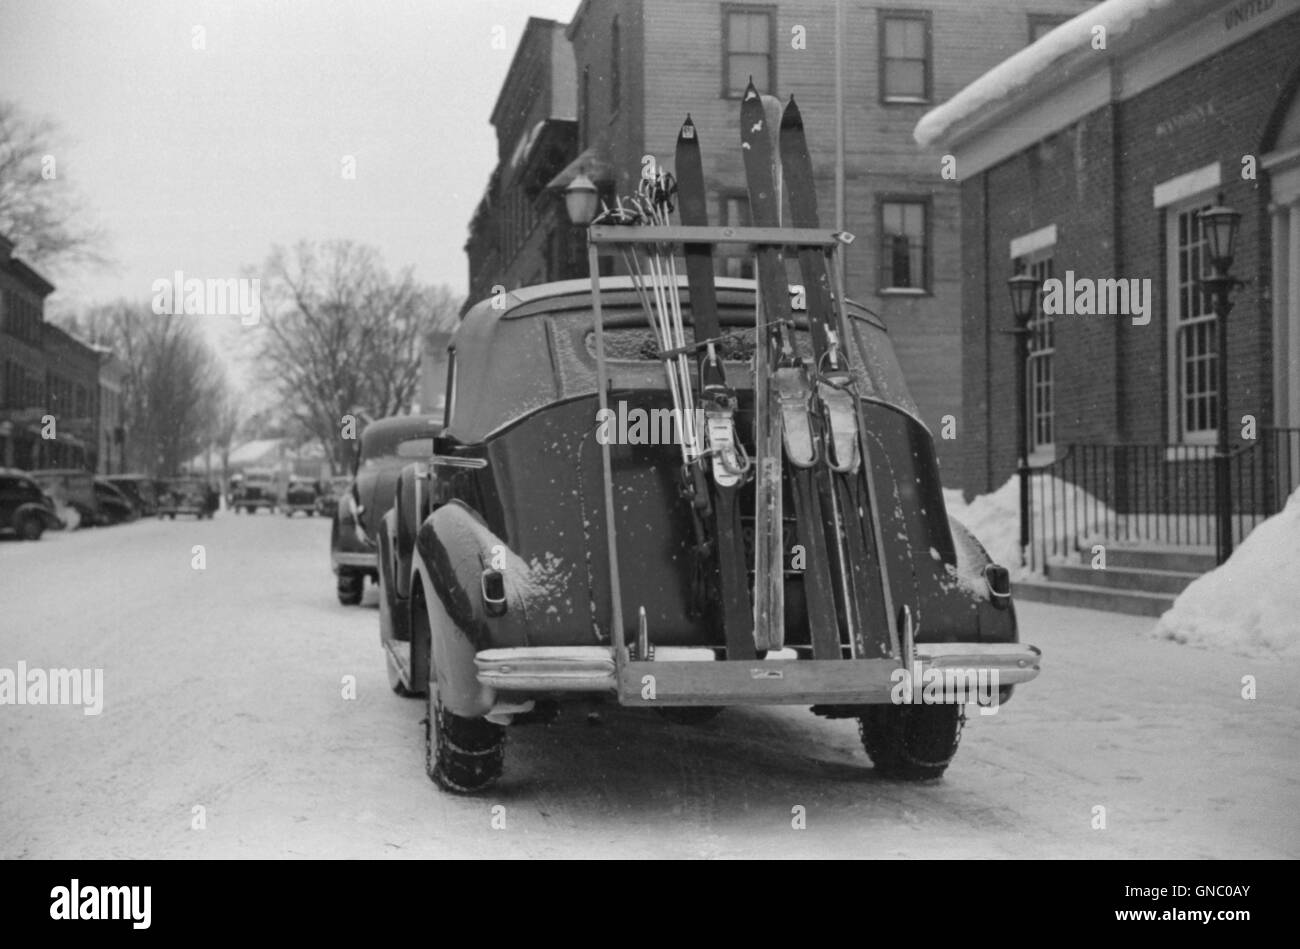 Skis on Ski Rack attached to Car Trunk, Woodstock, Vermont, USA, Marion Post Wolcott for Farm Security Administration, - Stock Image